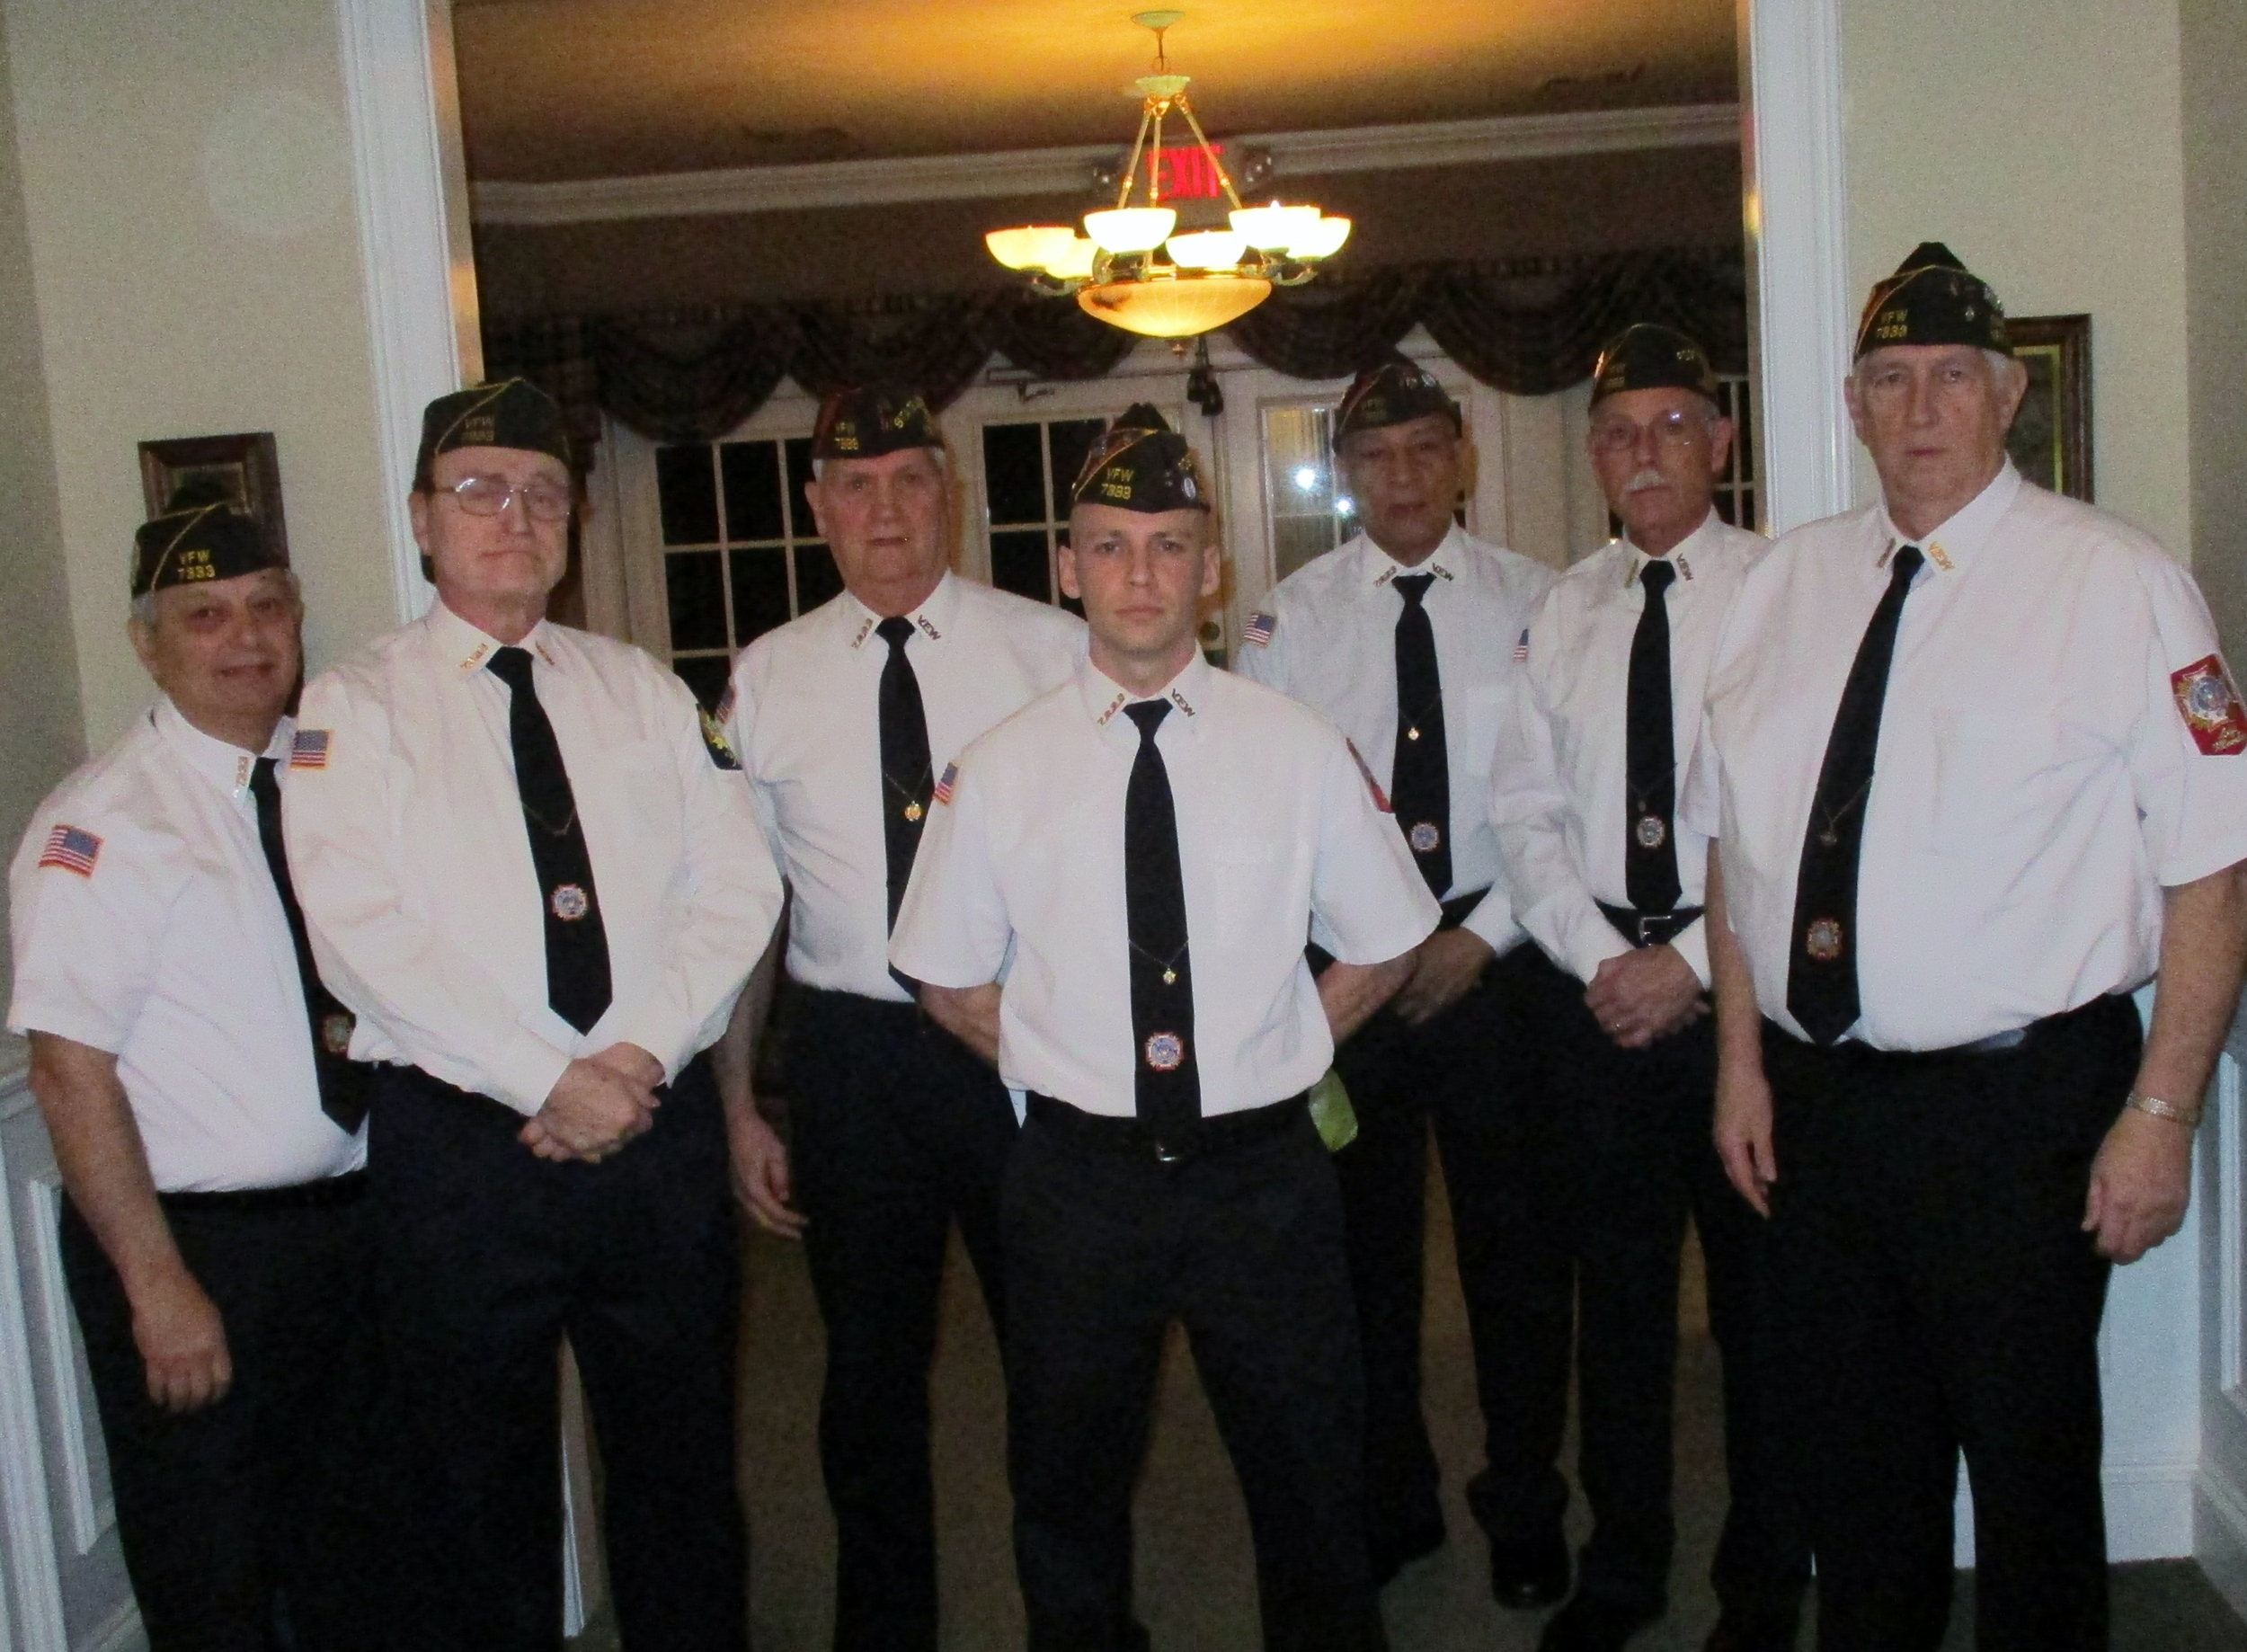 VFW Memorial Service was conducted by ( left to right): Rich, Bill, Jack, Scott, Emerson, Bryan and Dan.